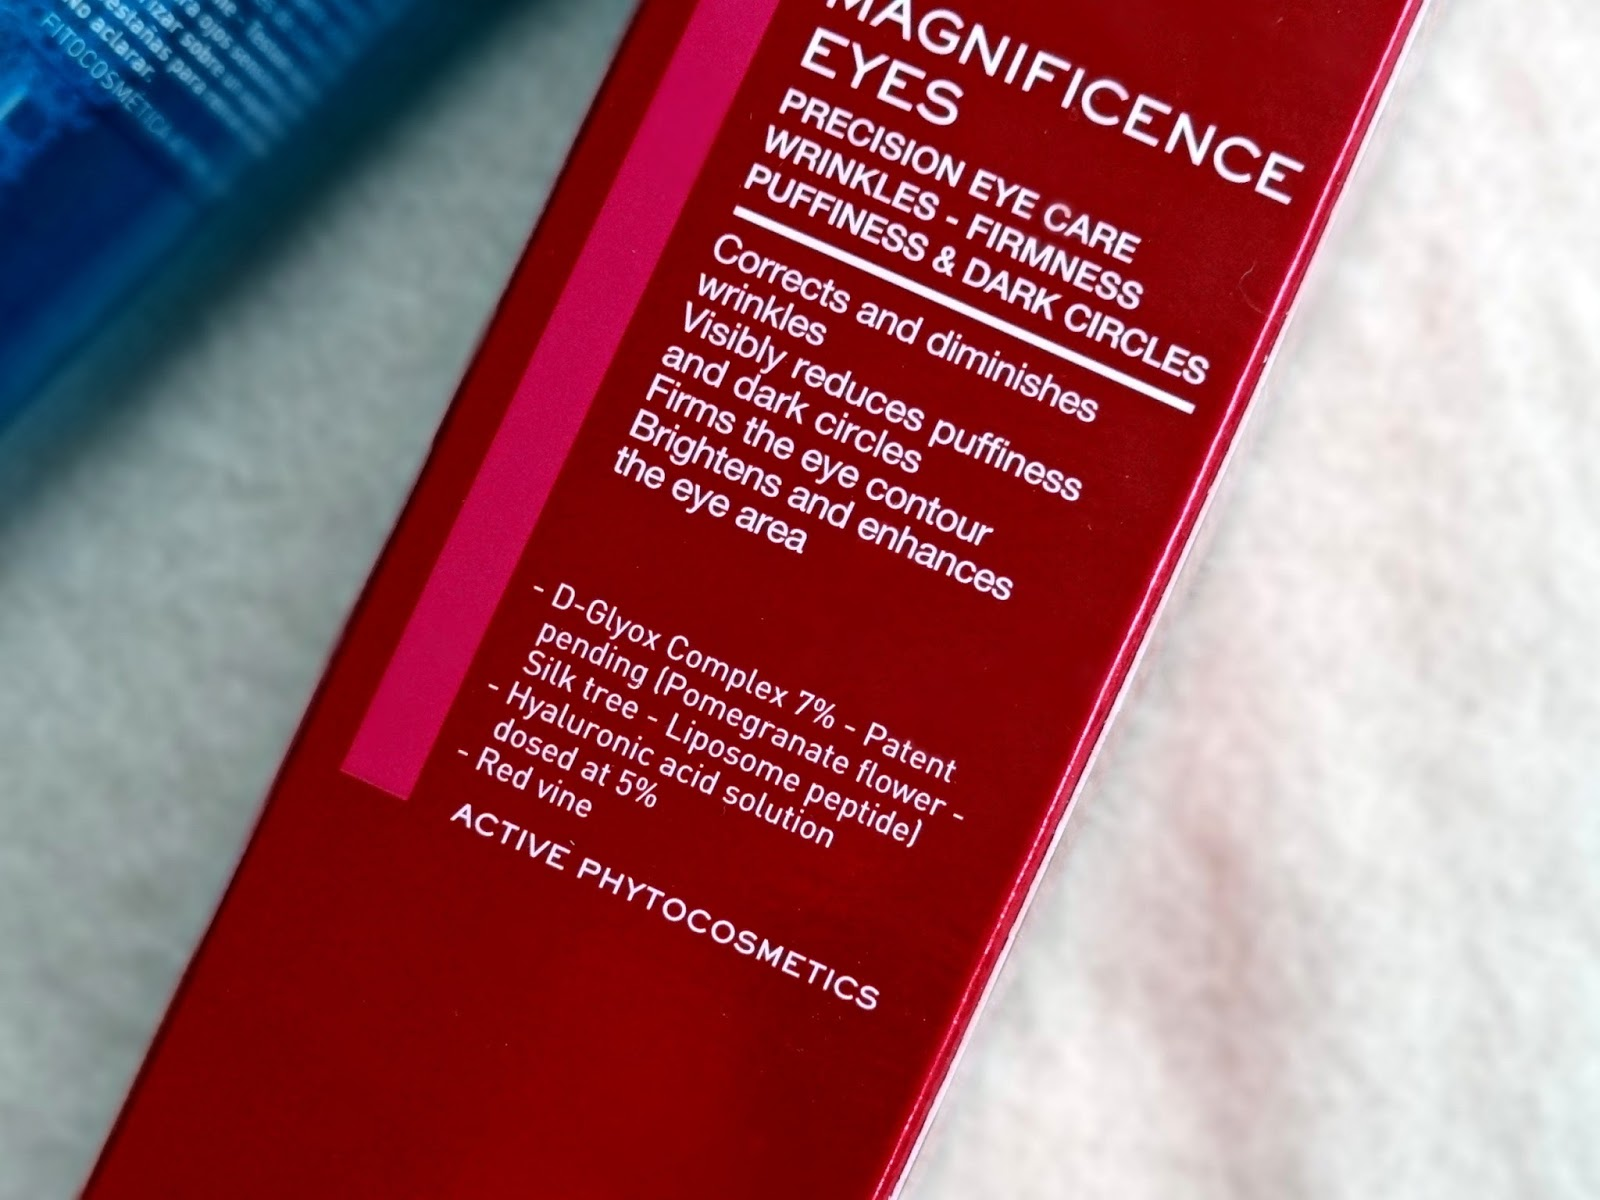 Magnificence Precision Eye Care Review, Photos, Anti Aging Eye Care fragrance free from Lierac